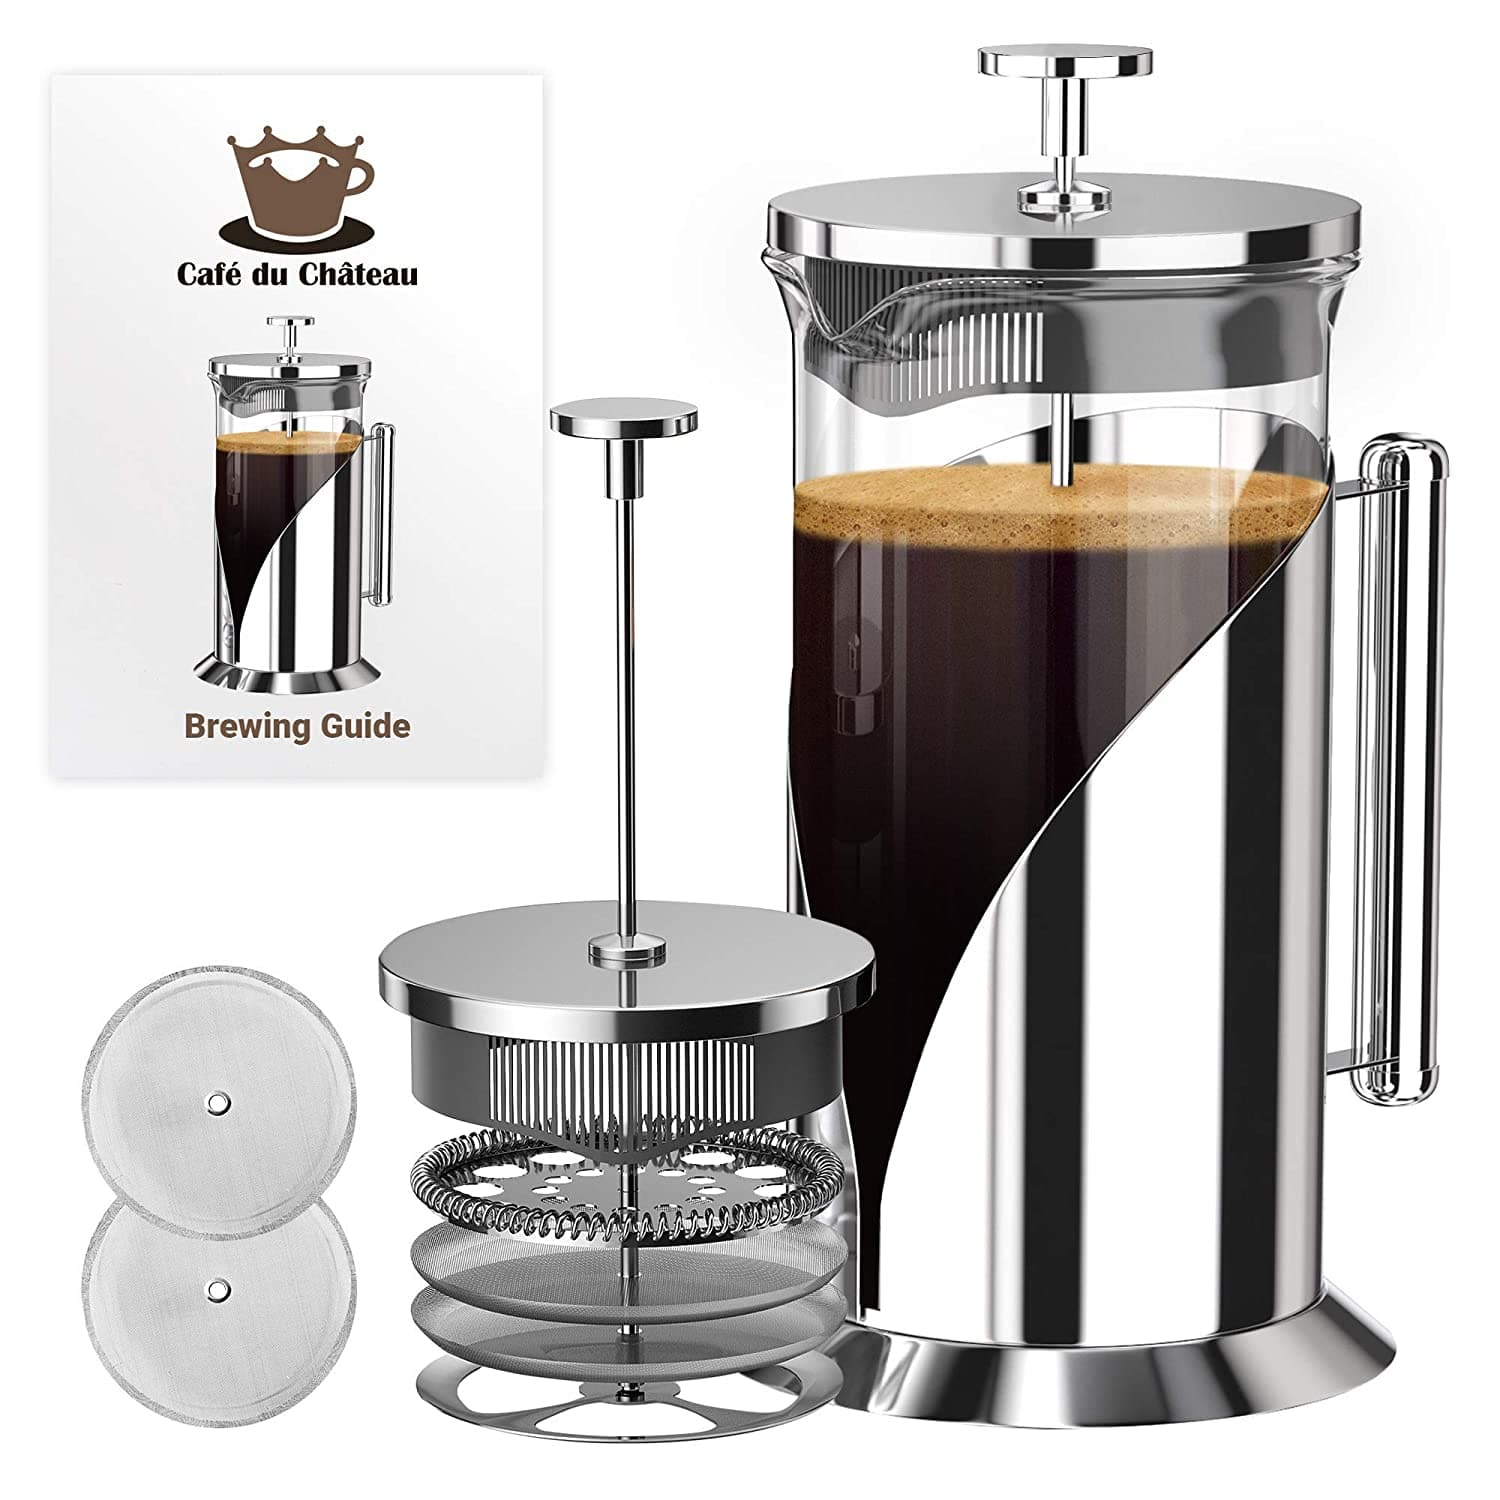 French Press Coffee Maker (34 Ounce) with 4 Level Filtration System - 304 Grade Stainless Steel - Heat Resistant Borosilicate Glass (40% off) $16.17